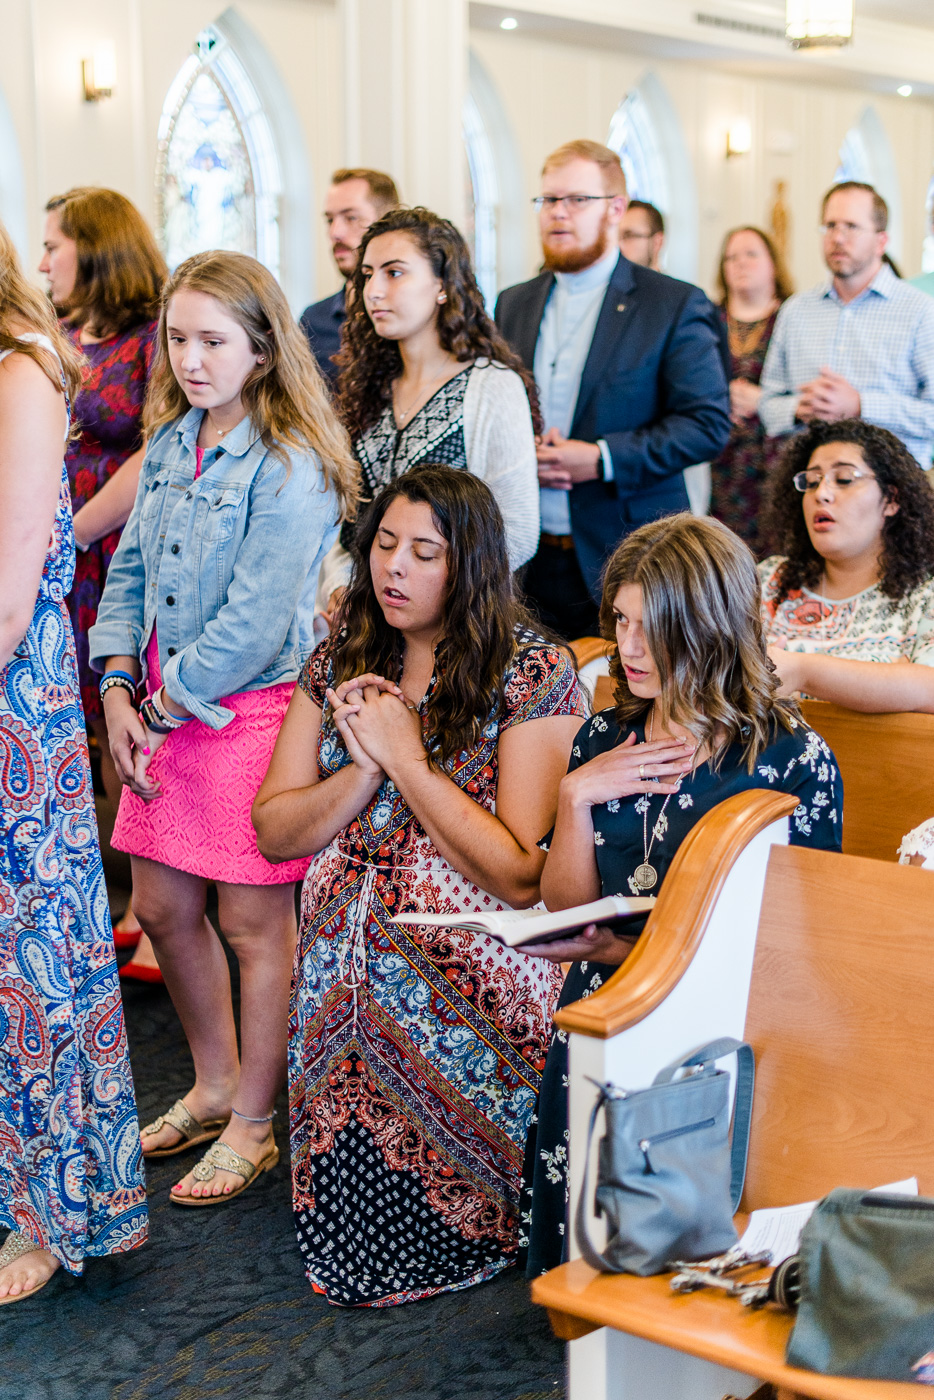 Emily-Annette-Photography-Catholic-Consecrated-Commitment-Mass-Event-Diocese-Arlington-Fairfax-Photographer-Youth-Apostles-August-2018-15.jpg